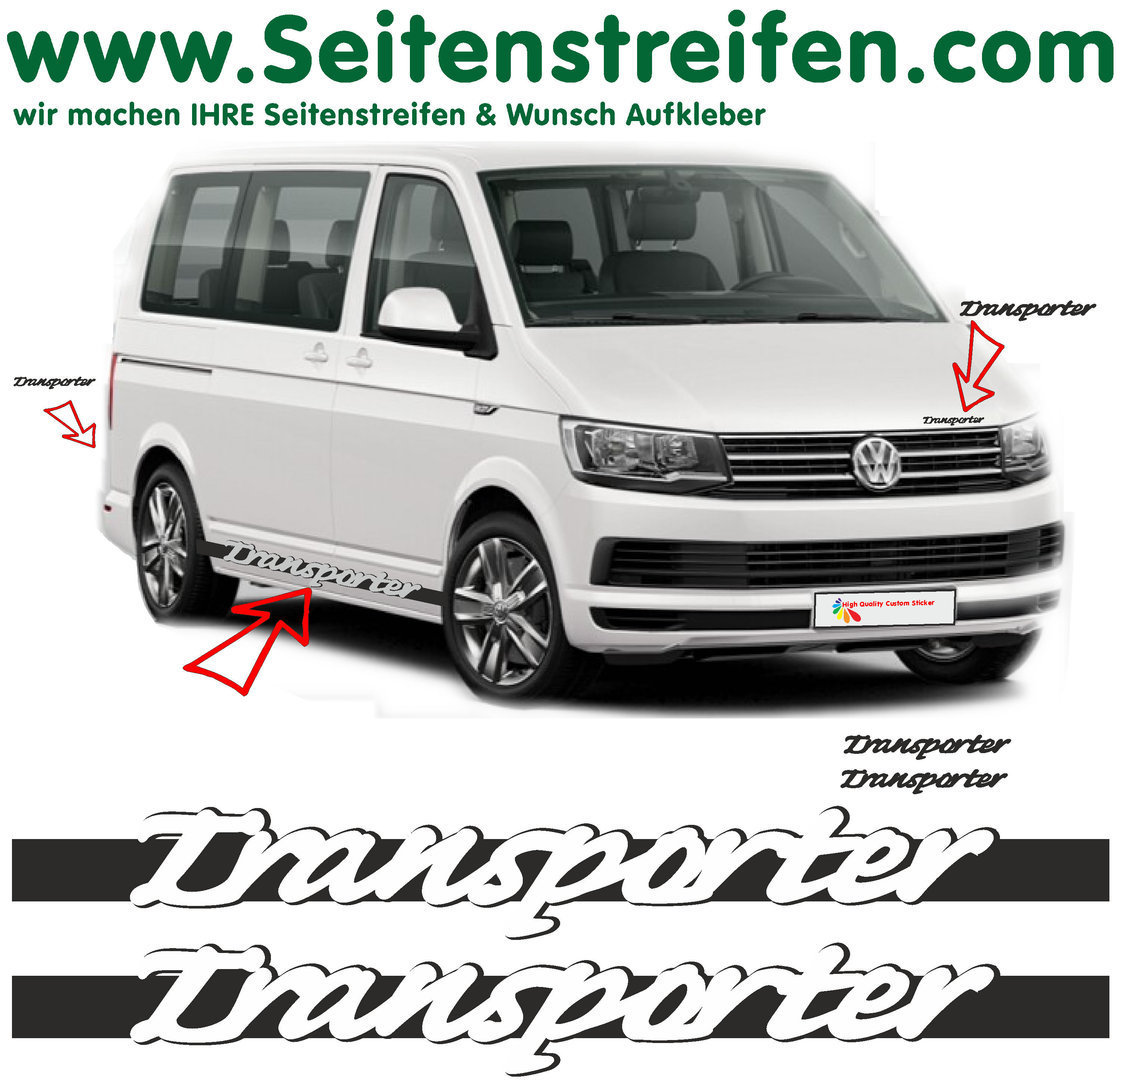 VW T4 T5 T6 Transporter Carrera Look - set completo de pegatinas laterales  N°:5421